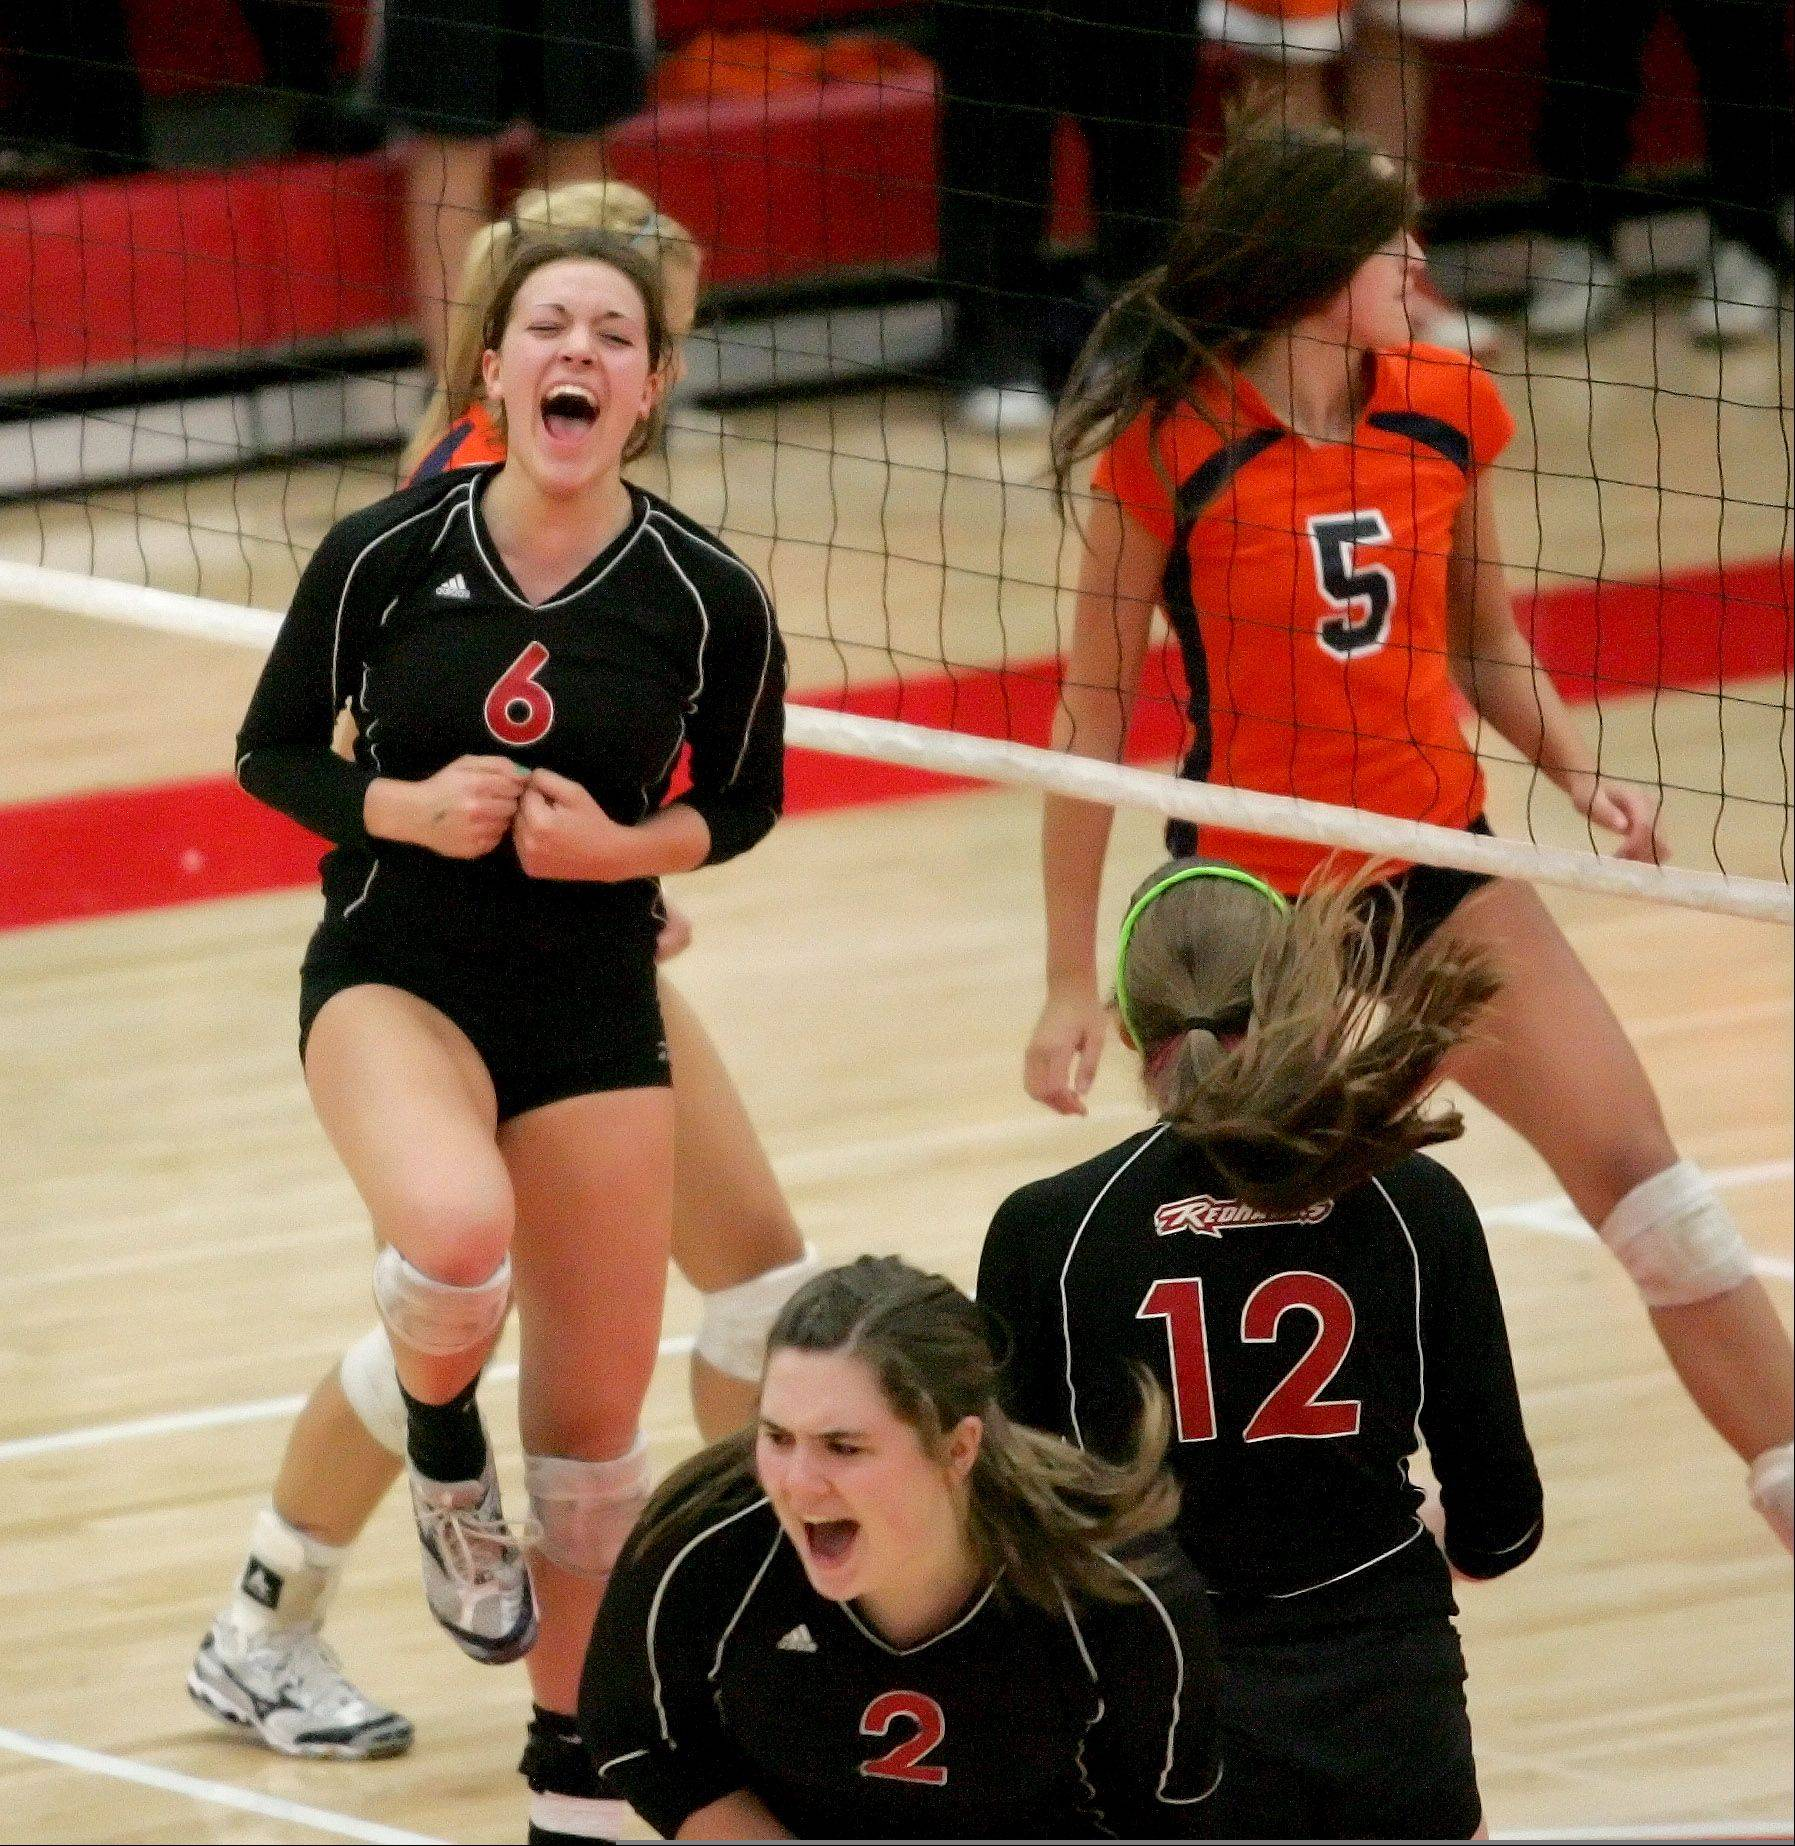 Naperville Central's Alysia Baznik, left, celebrates a point with teammates during Tuesday's volleyball match against Naperville North.